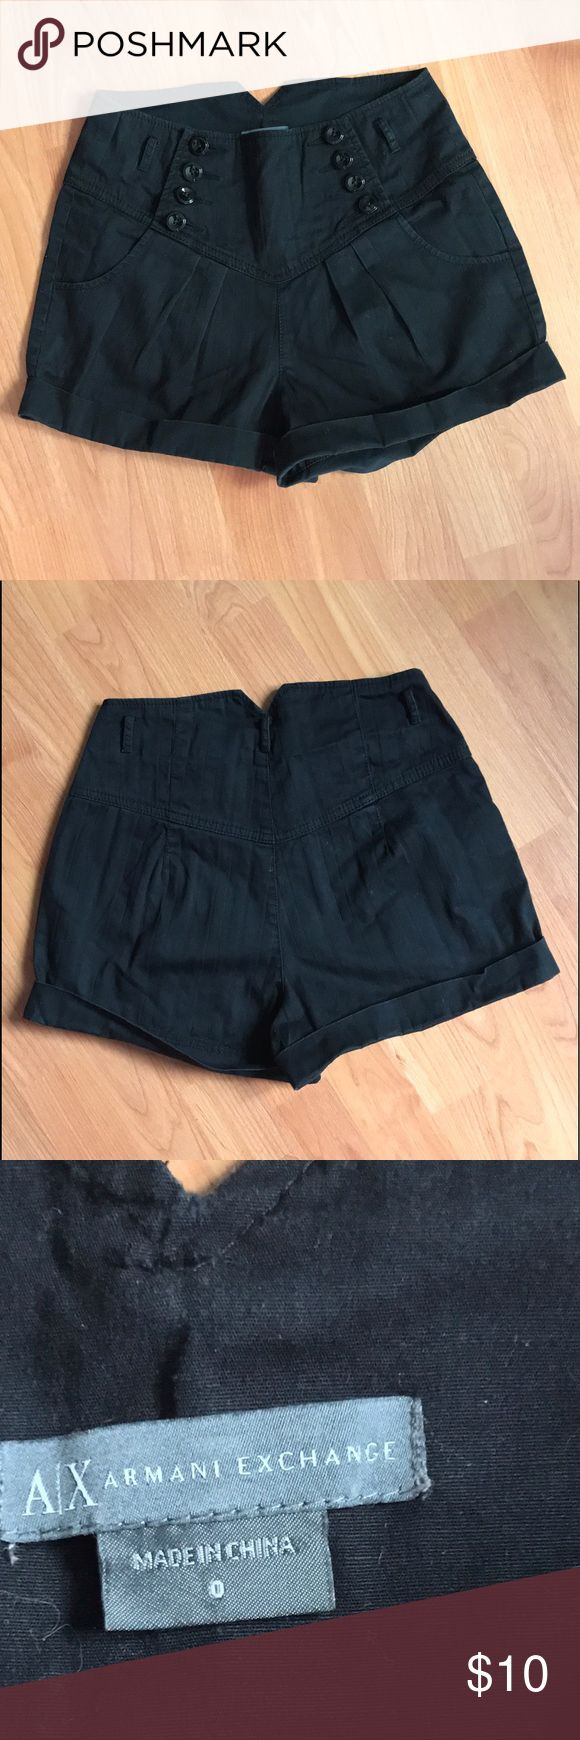 ARMANI EXCHANGE :|Women's Buttoned Shorts. Size:0. Brand:A/X ARMANI EXCHANGE. Women's Black Buttoned Shorts. Vintage-inspired with a nautical flair. Cute shorts to wear with a crop top. Perfect condition. Minimal signs of normal wear. No flaw/defect/filter. Size:0. A/X Armani Exchange Shorts